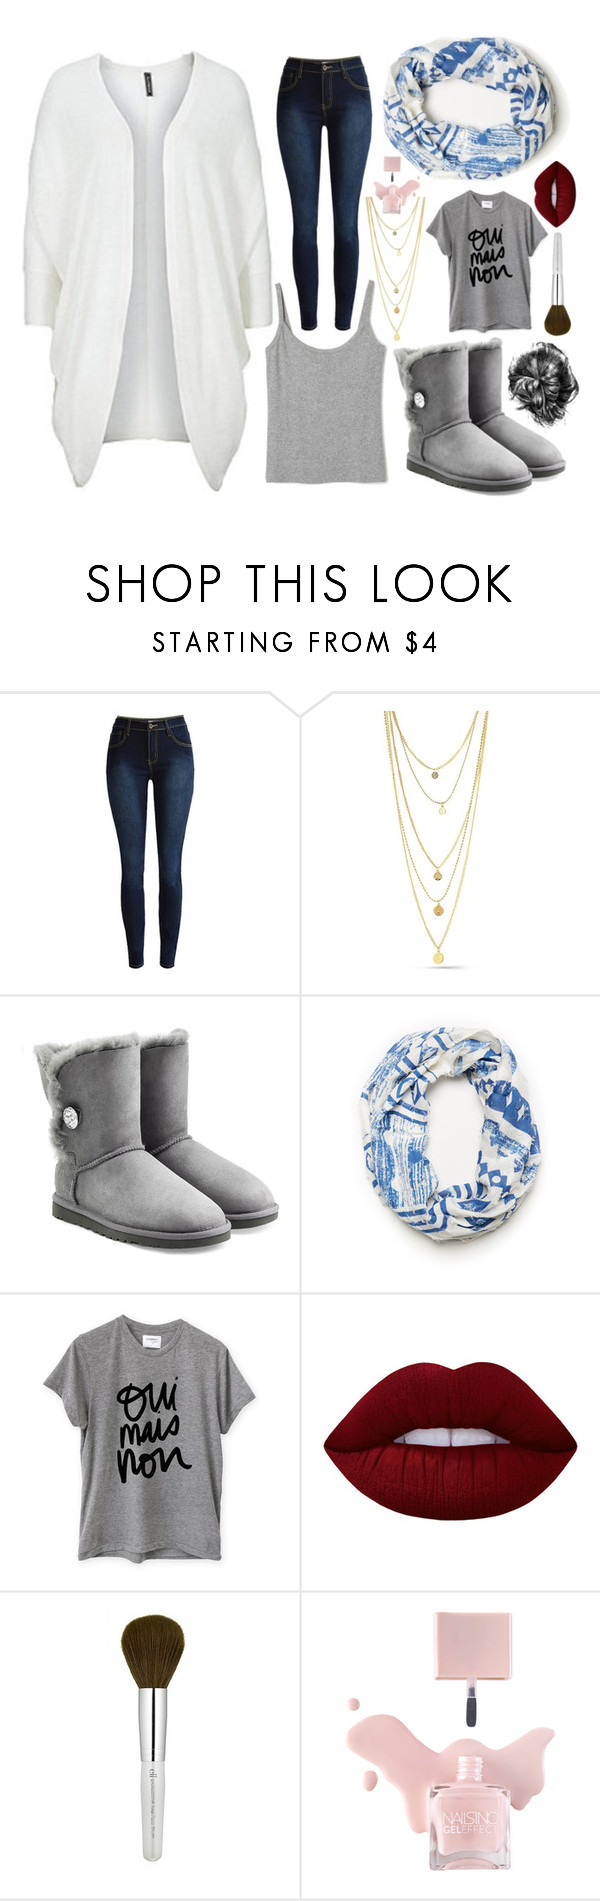 """Untitled 26"" by laurenthewolf ❤ liked on Polyvore featuring UGG, Sincerely, Jules and Lime Crime"